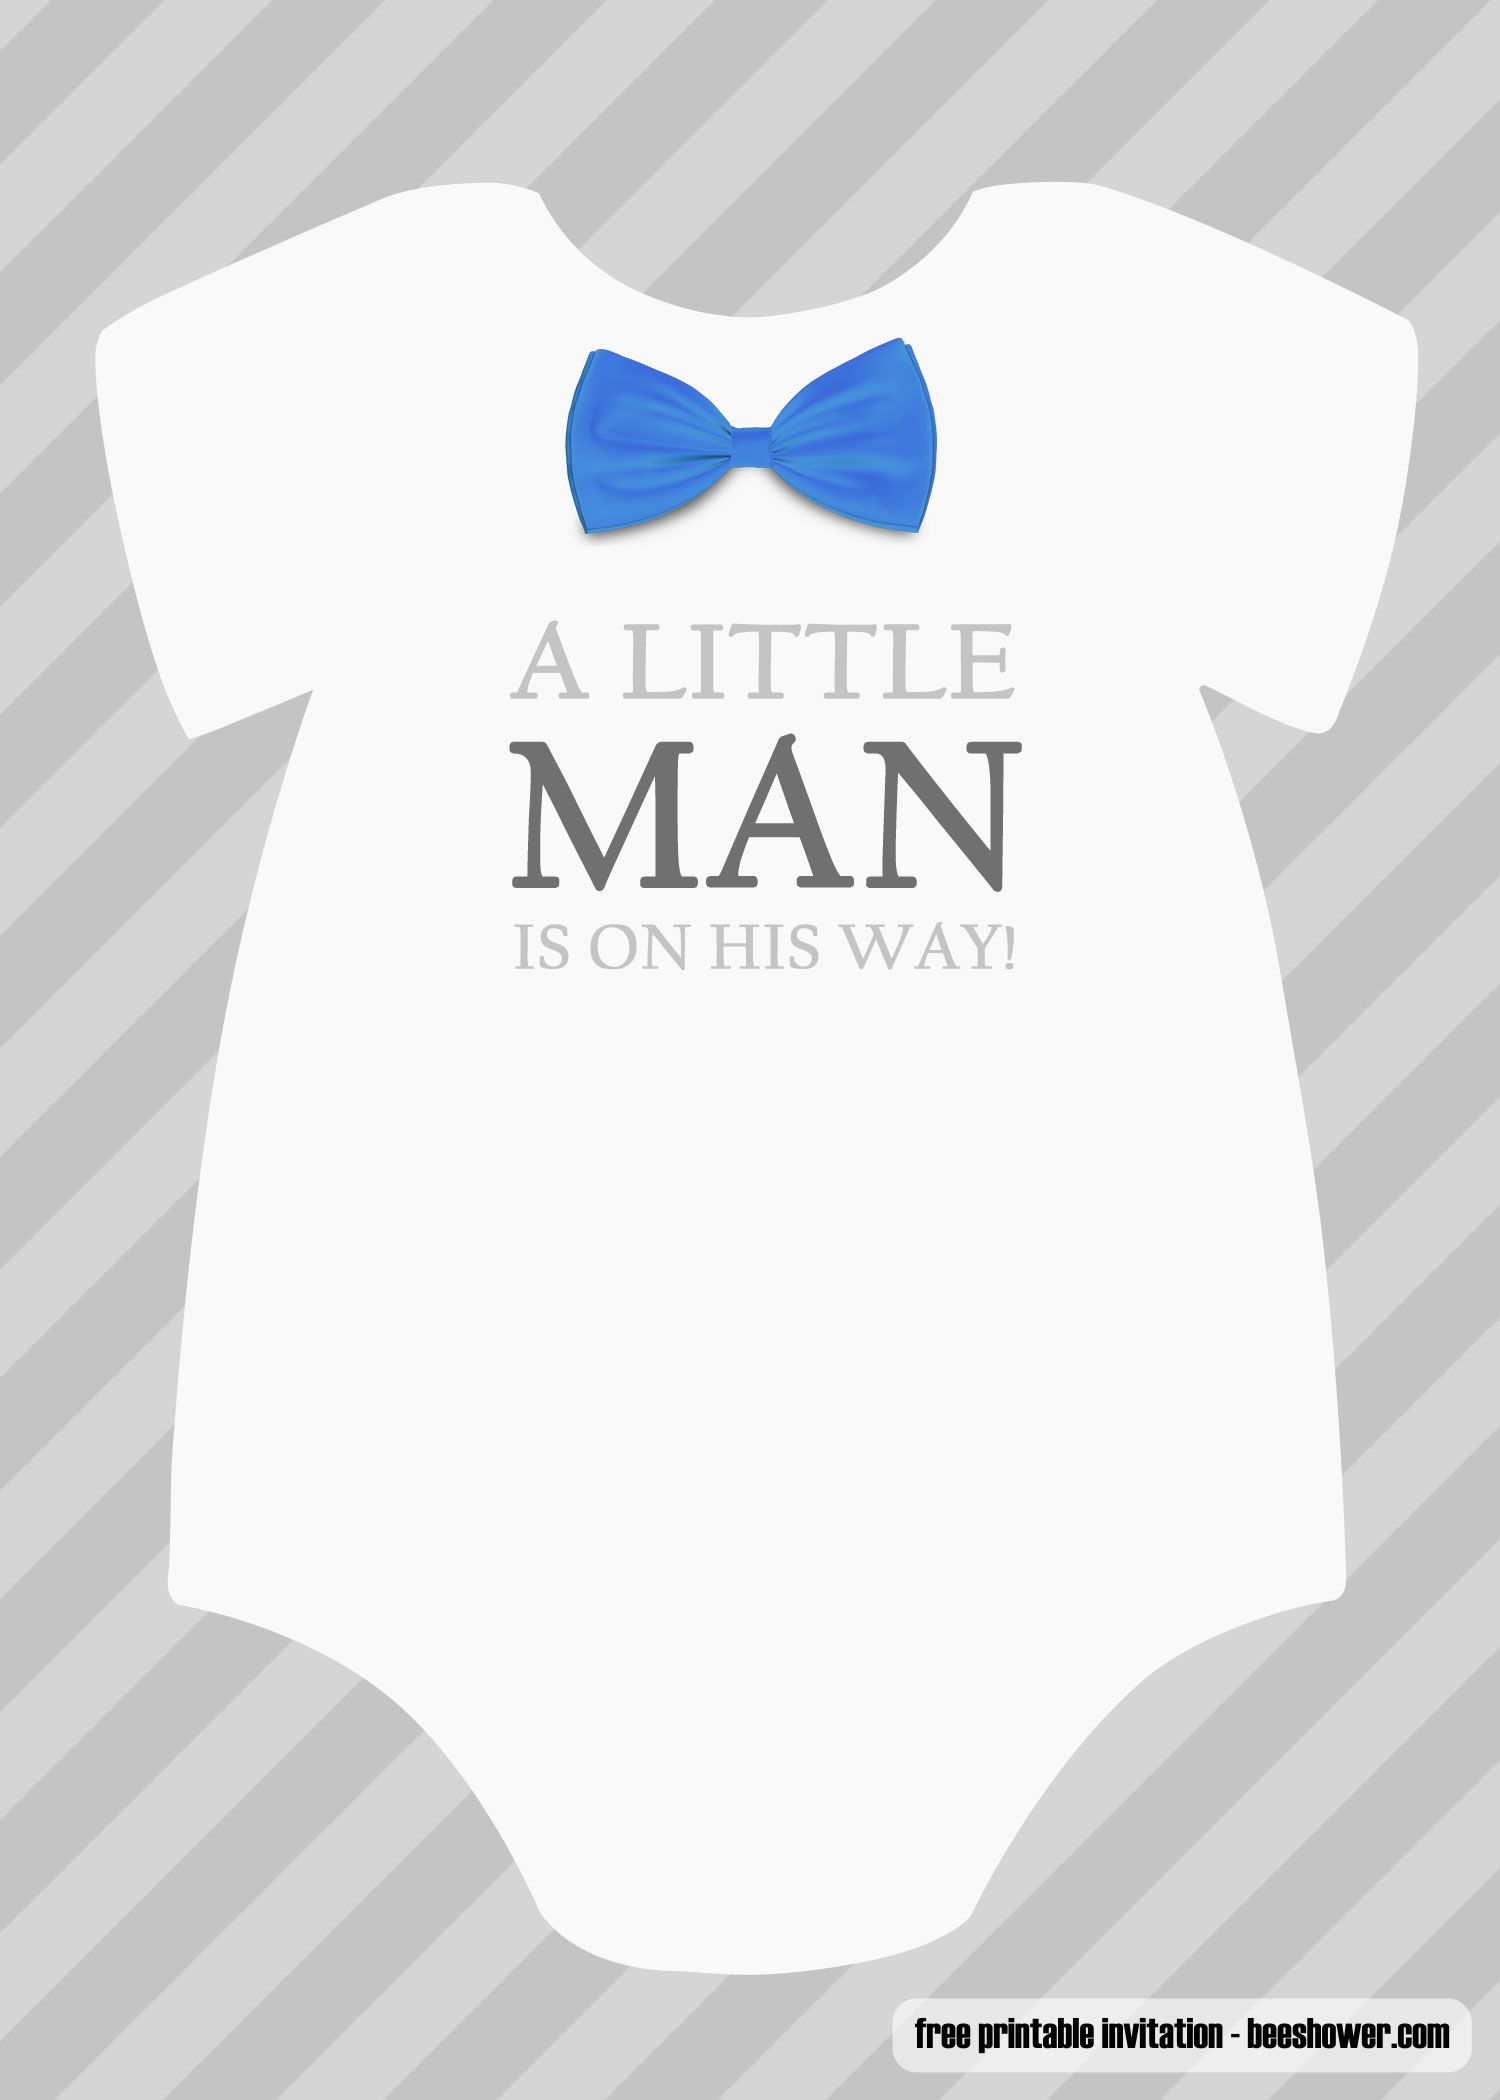 FREE Boy Baby Shower Invitations Templates  FREE Prin  Boy baby